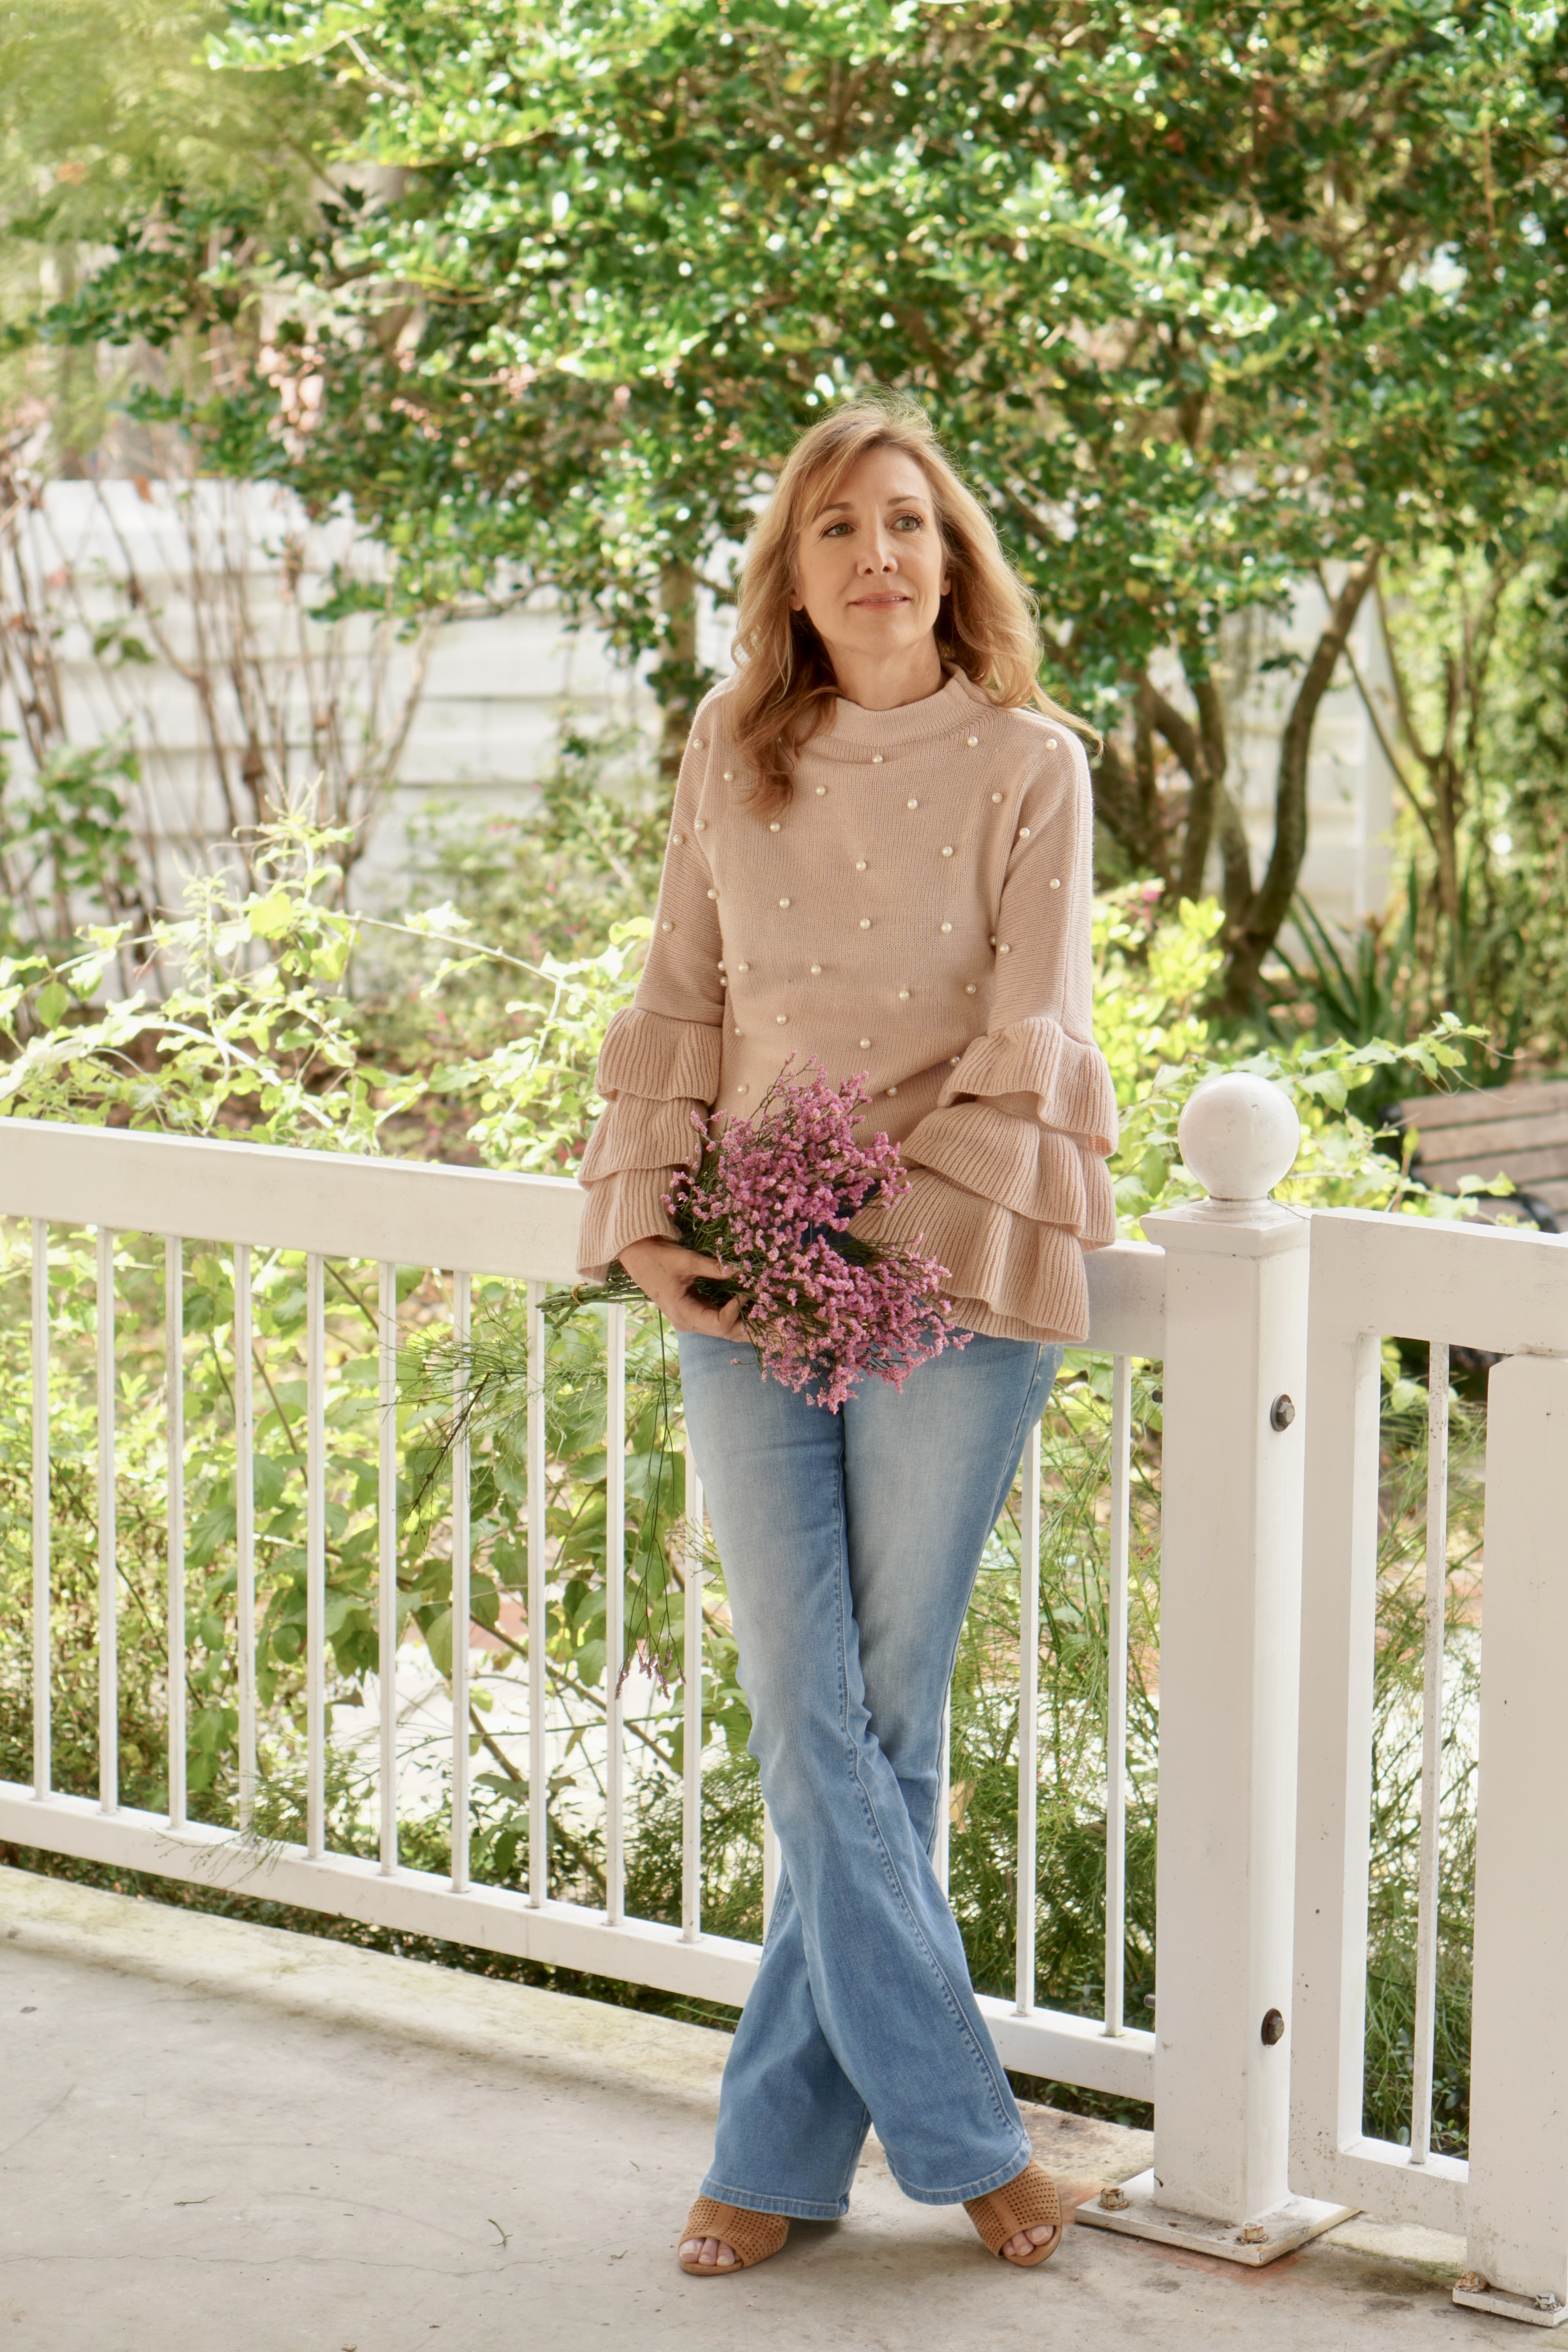 Nina Bandoni Sharing A Journey wearing pink sweater and blue jeans